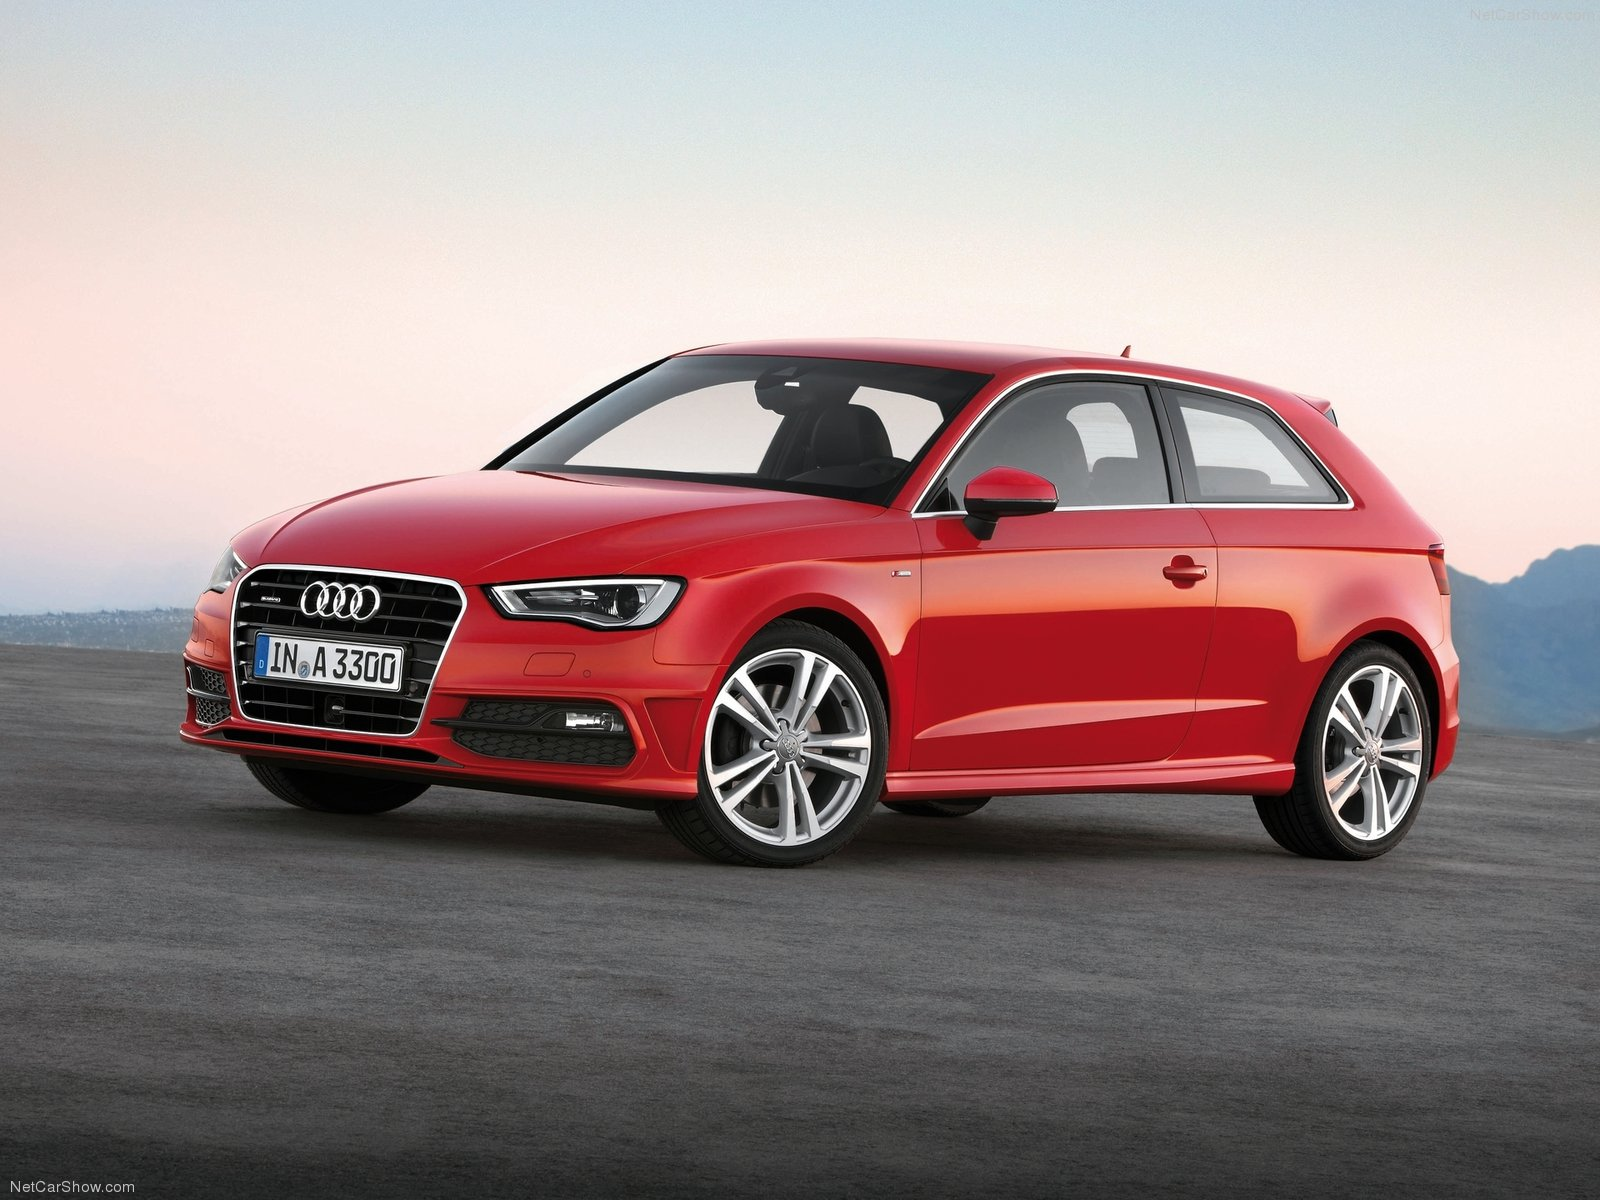 3dtuning Of Audi A3 3 Door Hatchback 2013 3dtuning Com